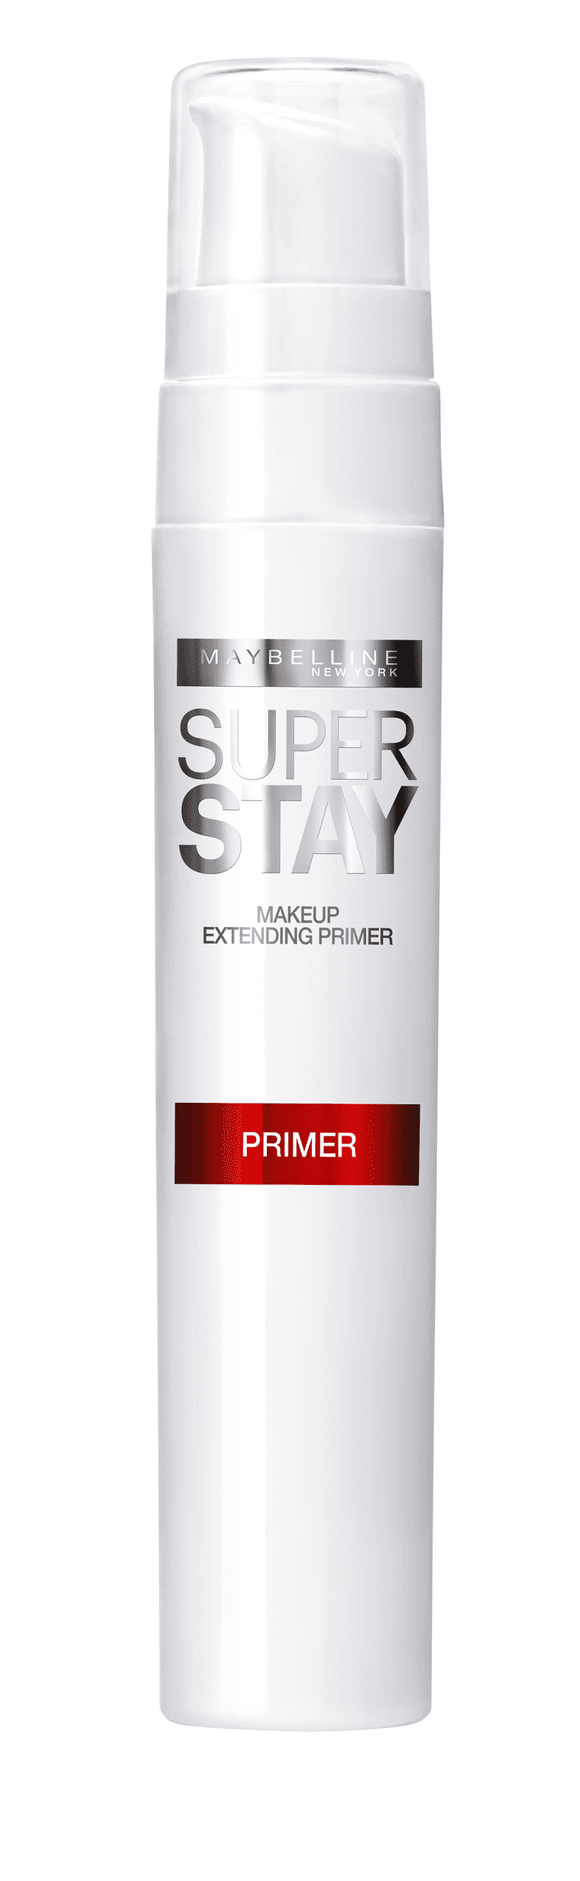 Maybelline Superstay Primer 20 ml